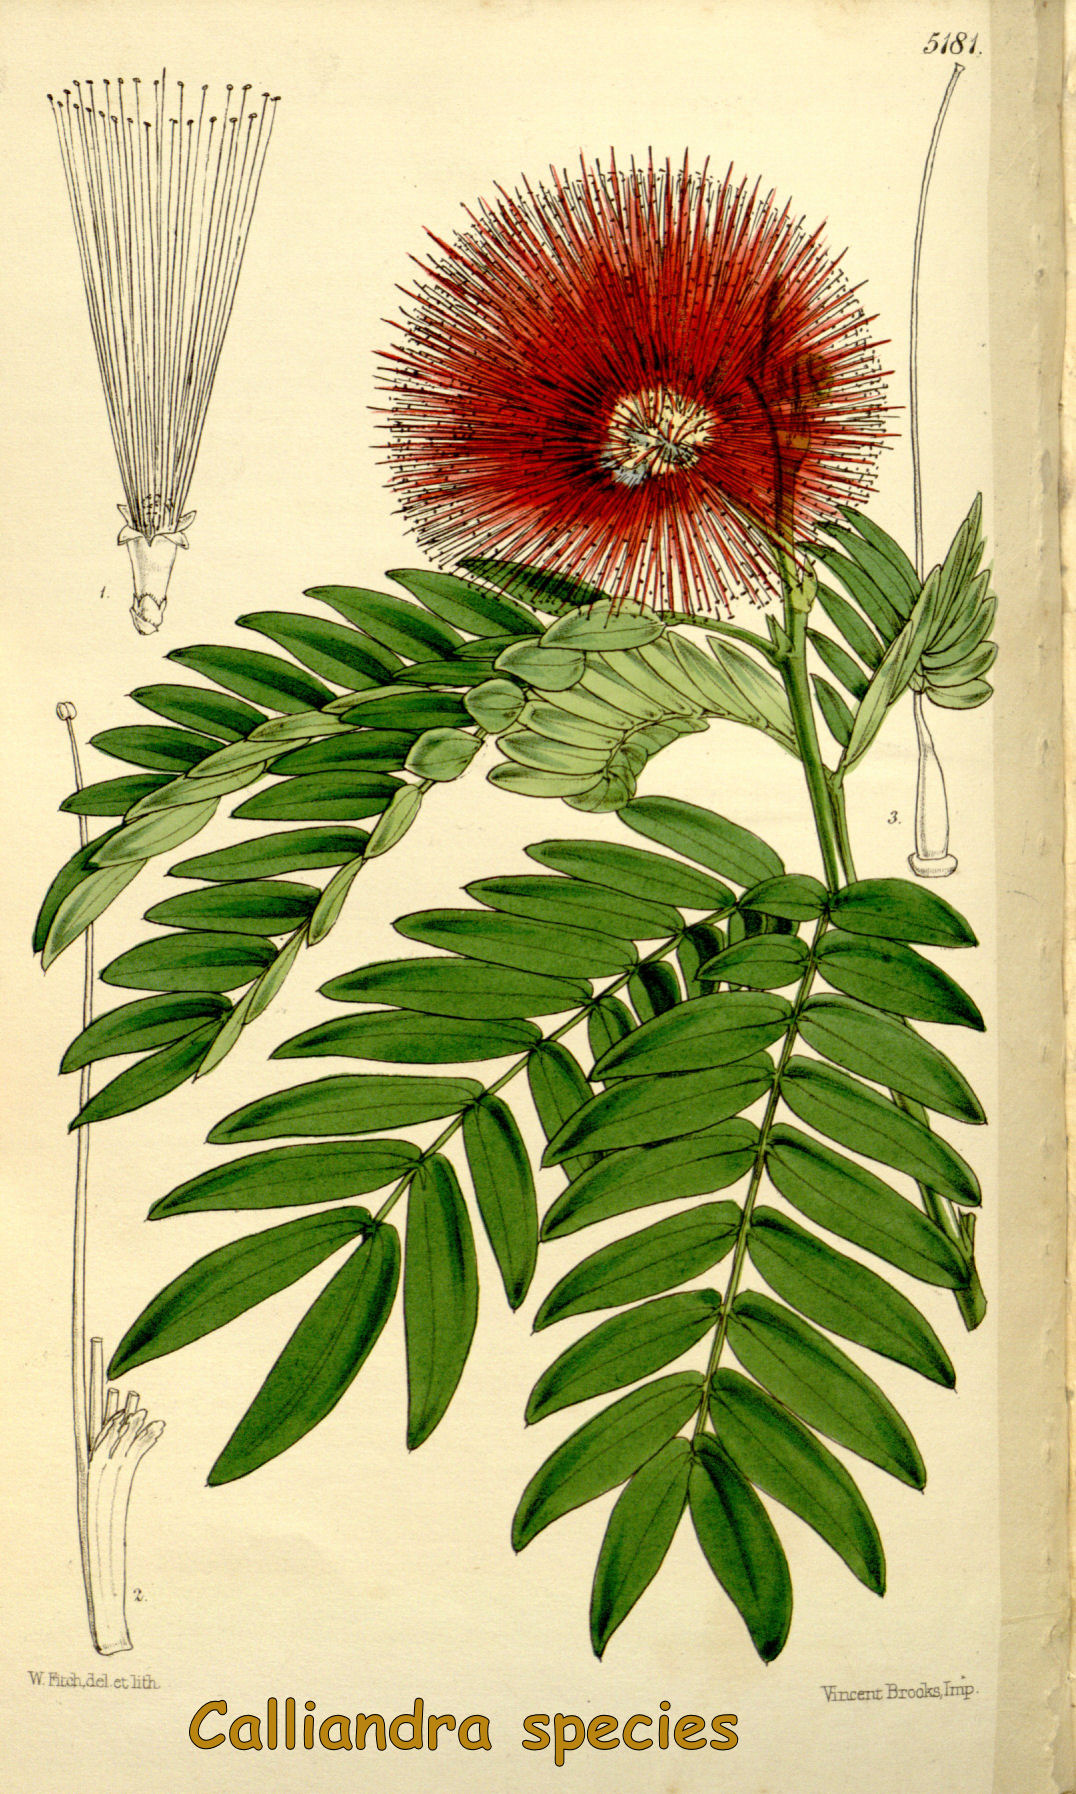 Calliandra species